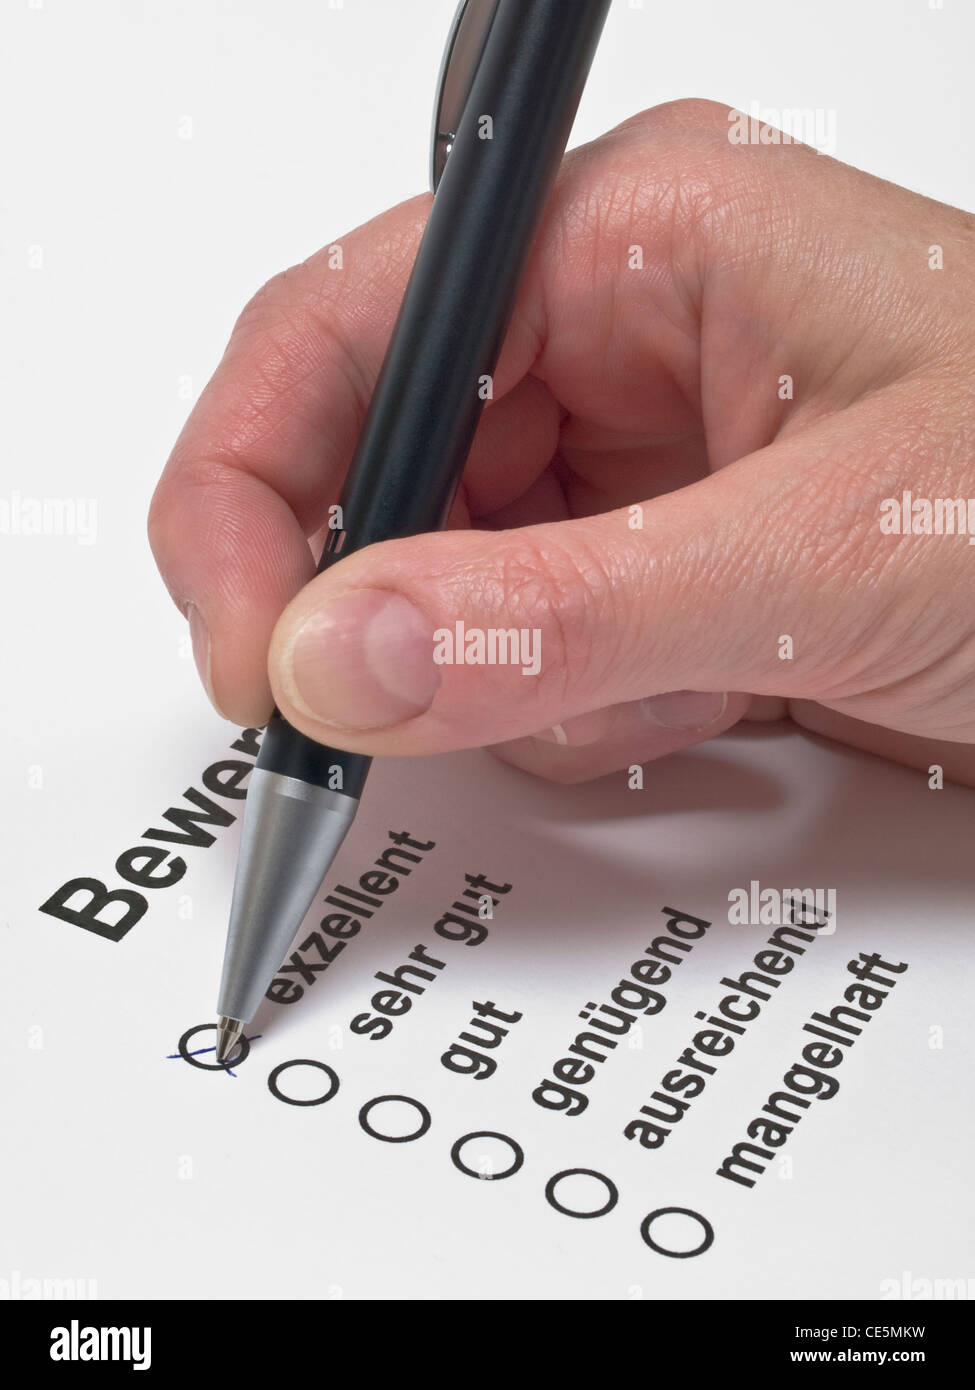 auf einem Bewertungsbogen wird 'exzellent' angekreuzt | excellent is marking with a cross on an evaluation - Stock Image